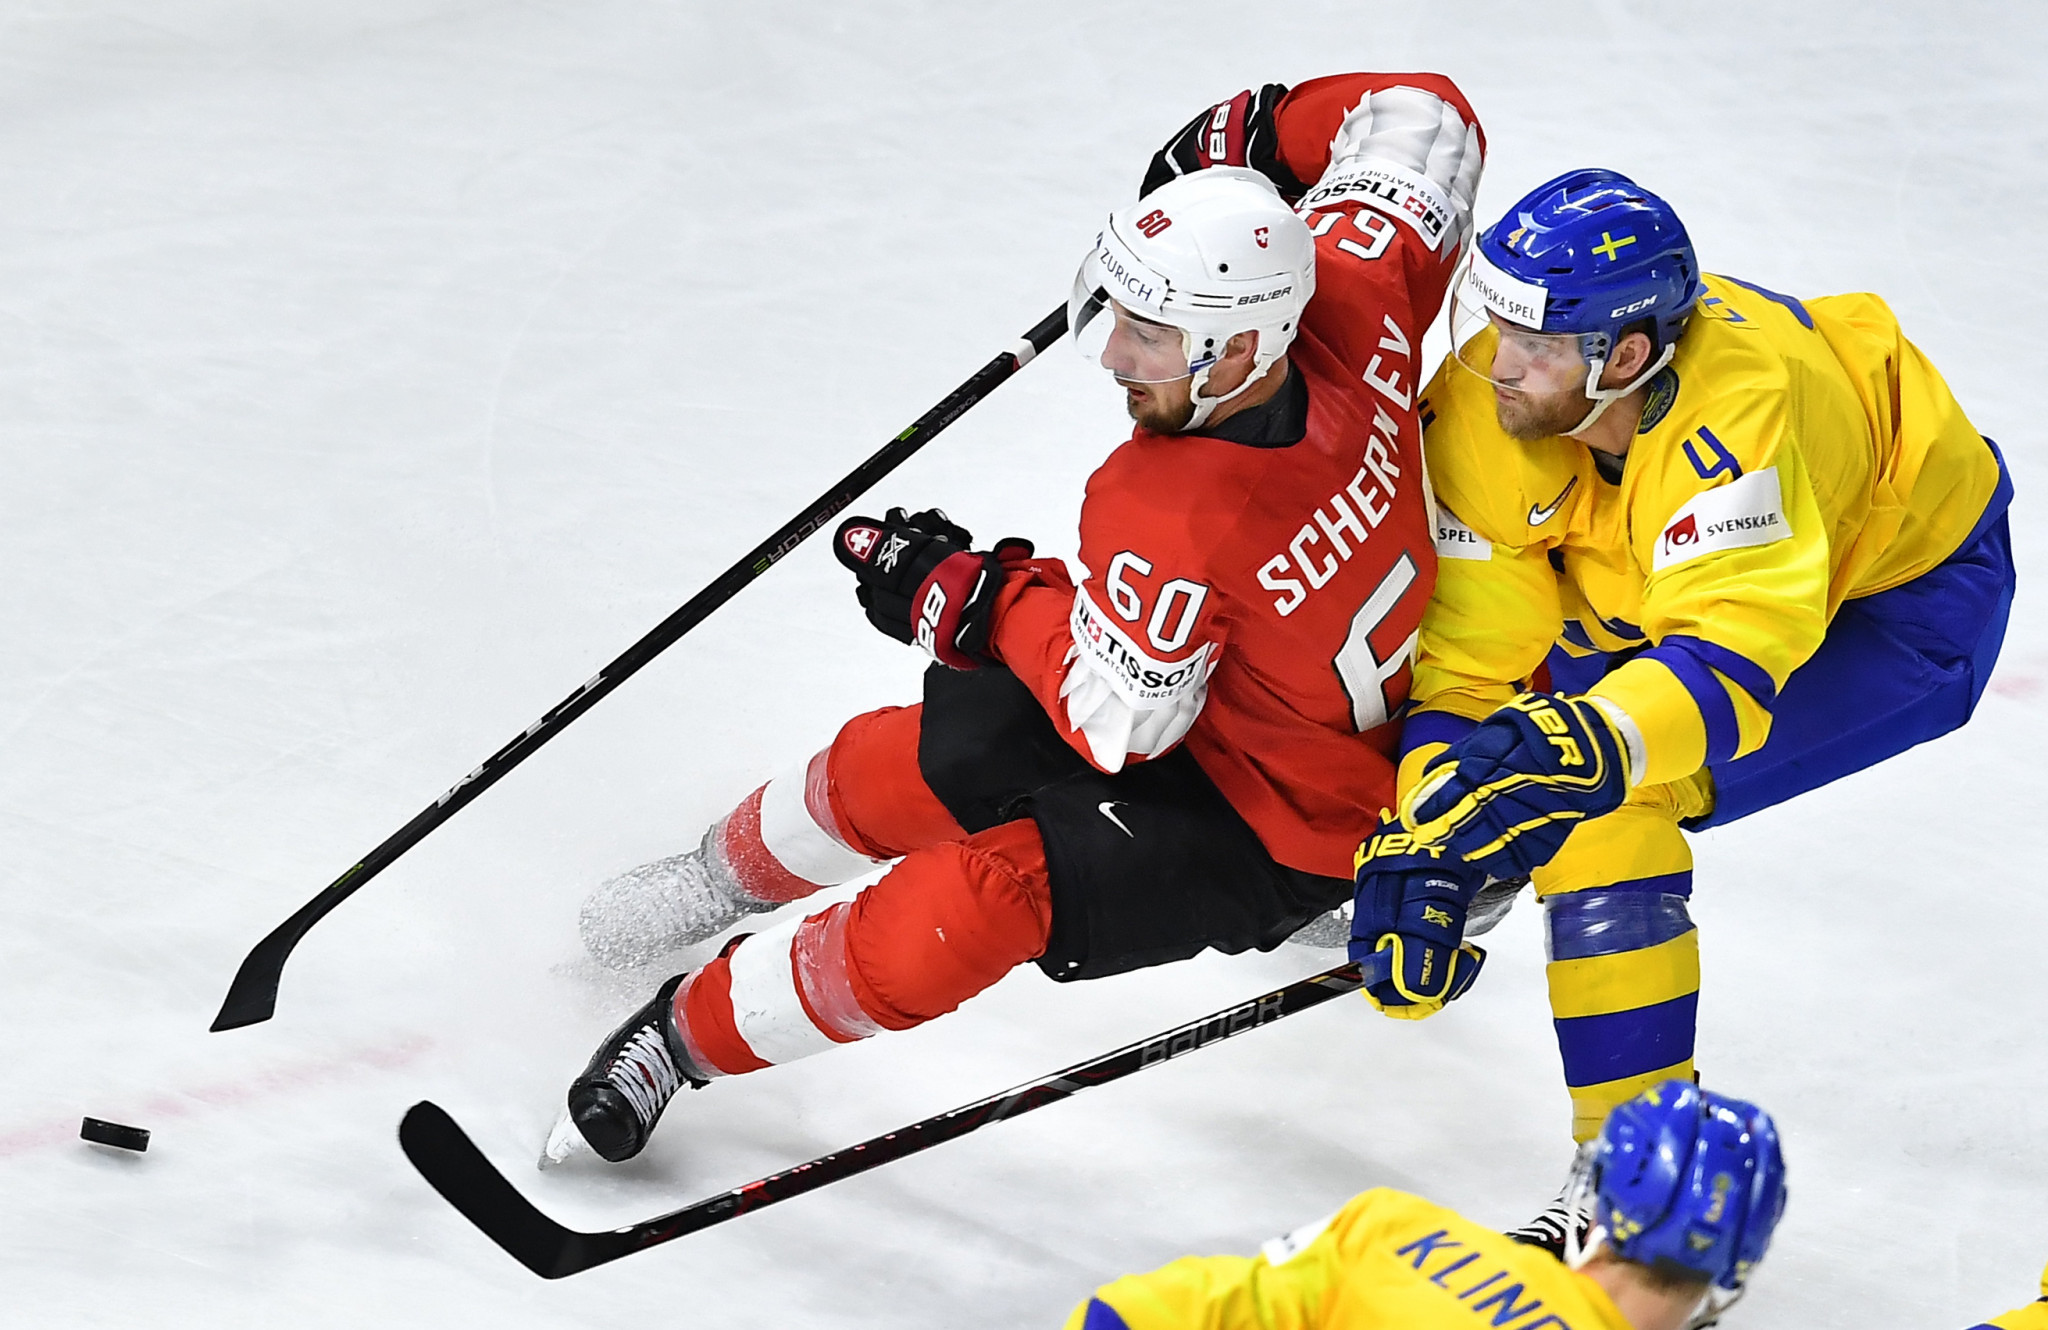 Sweden won the IIHF World Championship by defeating Denmark in the final ©Getty Images